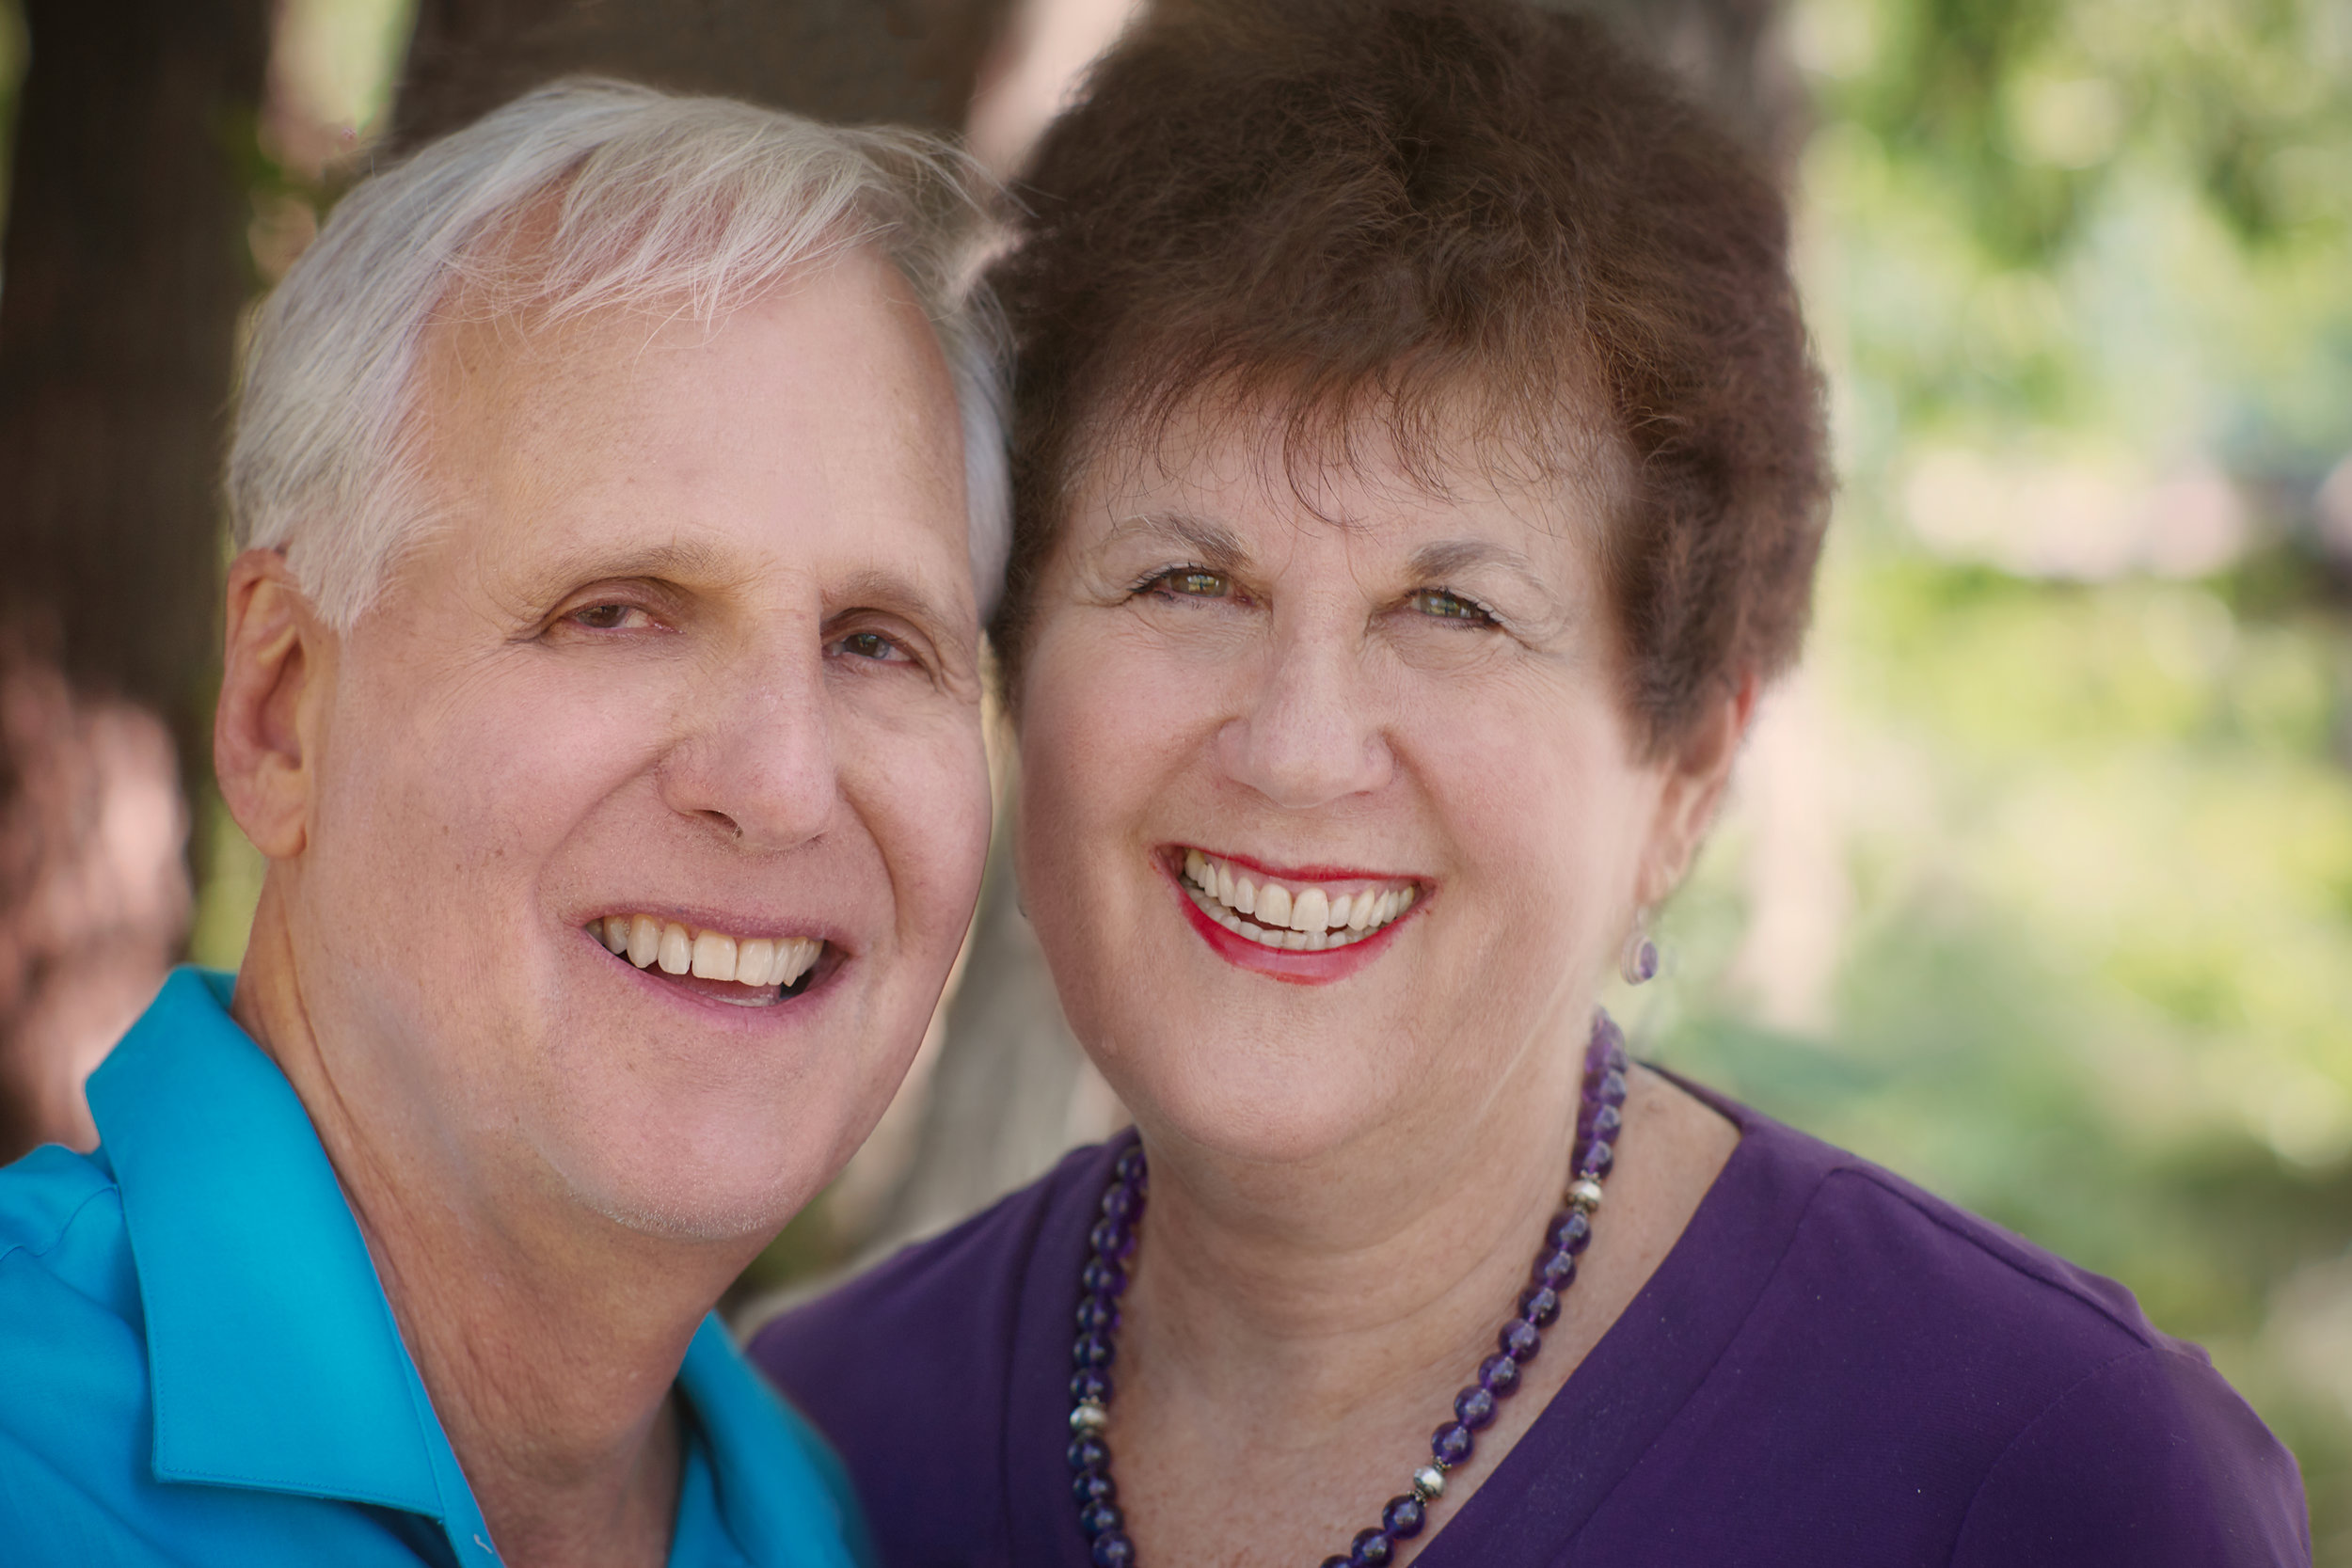 Jim and Ruth Sharon - Jim Sharon, EdD is a licensed psychologist, Ruth Sharon, MS is a licensed professional counselor, both in private practice together. Dr. Sharon was certified as a life coach in 2001 and Ruth became a certified wellness coach in 2006. Jim and Ruth have worked together as couples' coaches since 2011. The Sharons each have over four decades of professional experience serving thousands of couples as relationship coaches, as counselors, and as seminar and retreat facilitators.They were voted Best Relationship Coaches in Colorado in 2015 and 2016. Their latest of four published books is Secrets of a Soulful Marriage: Creating and Sustaining a Loving, Sacred Relationship, SkyLight Paths, 2014. The Sharons have also served as facilitators for coaches and as board members of the Colorado Chapter of the esteemed International Coach Federation.Married since 1970, Jim and Ruth have raised three adult, married children and currently have three young granddaughters. They presently reside in the Denver area.